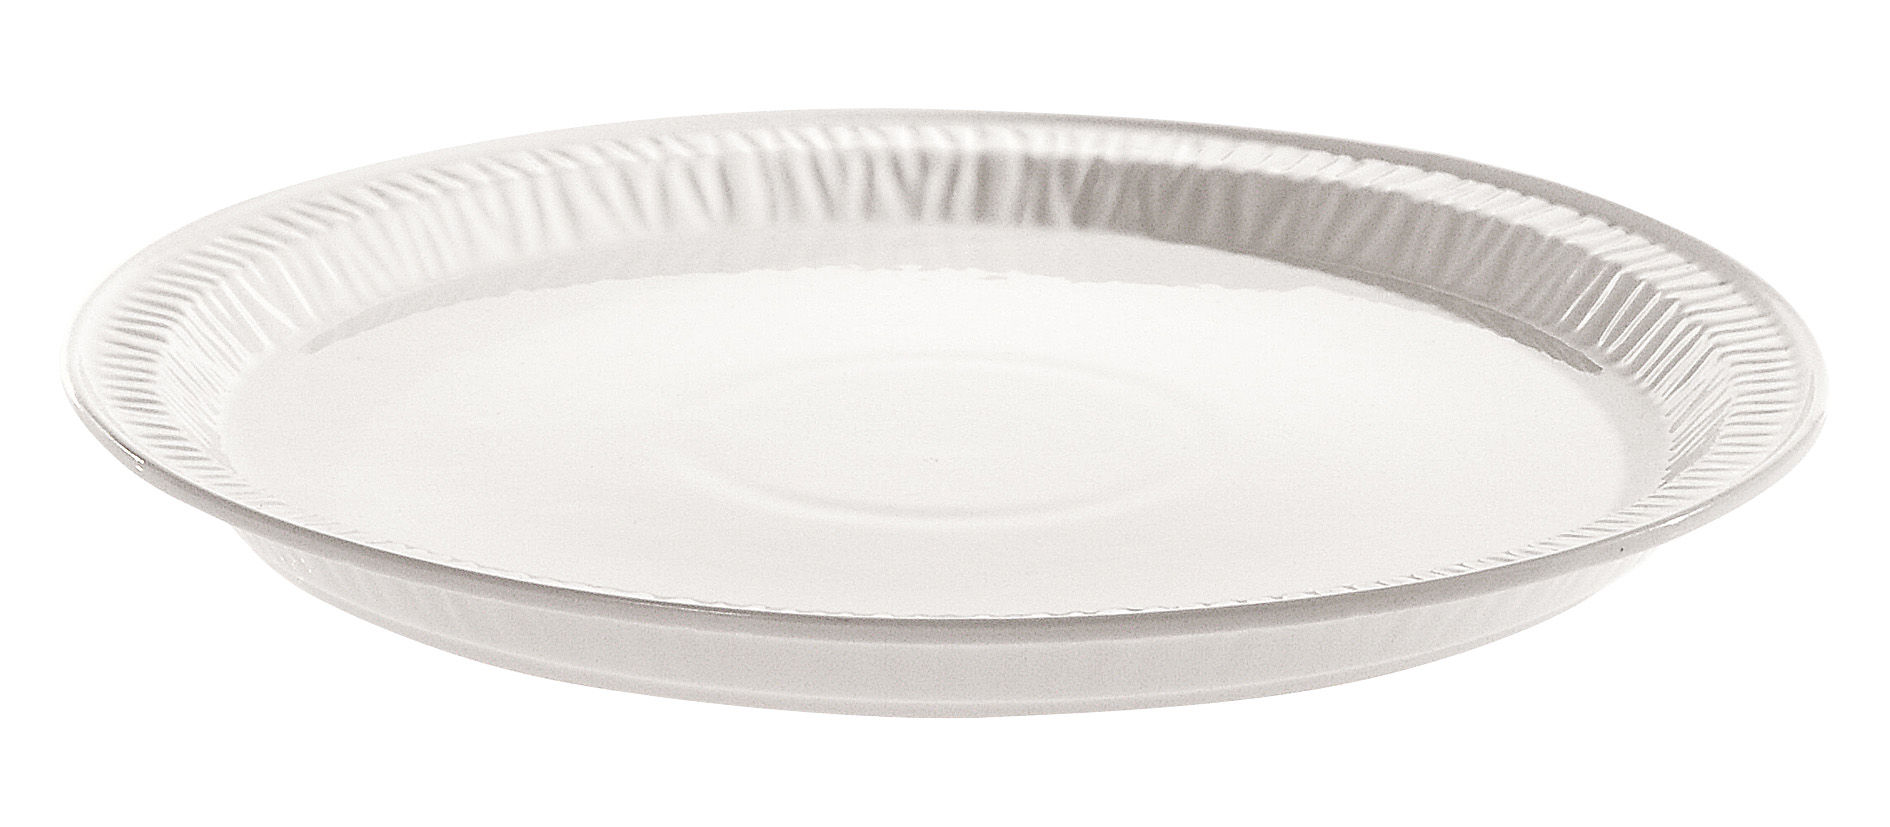 Tableware - Plates - Estetico quotidiano Plate - Ø 28 cm - China by Seletti - White / Plate Ø 28 cm - China